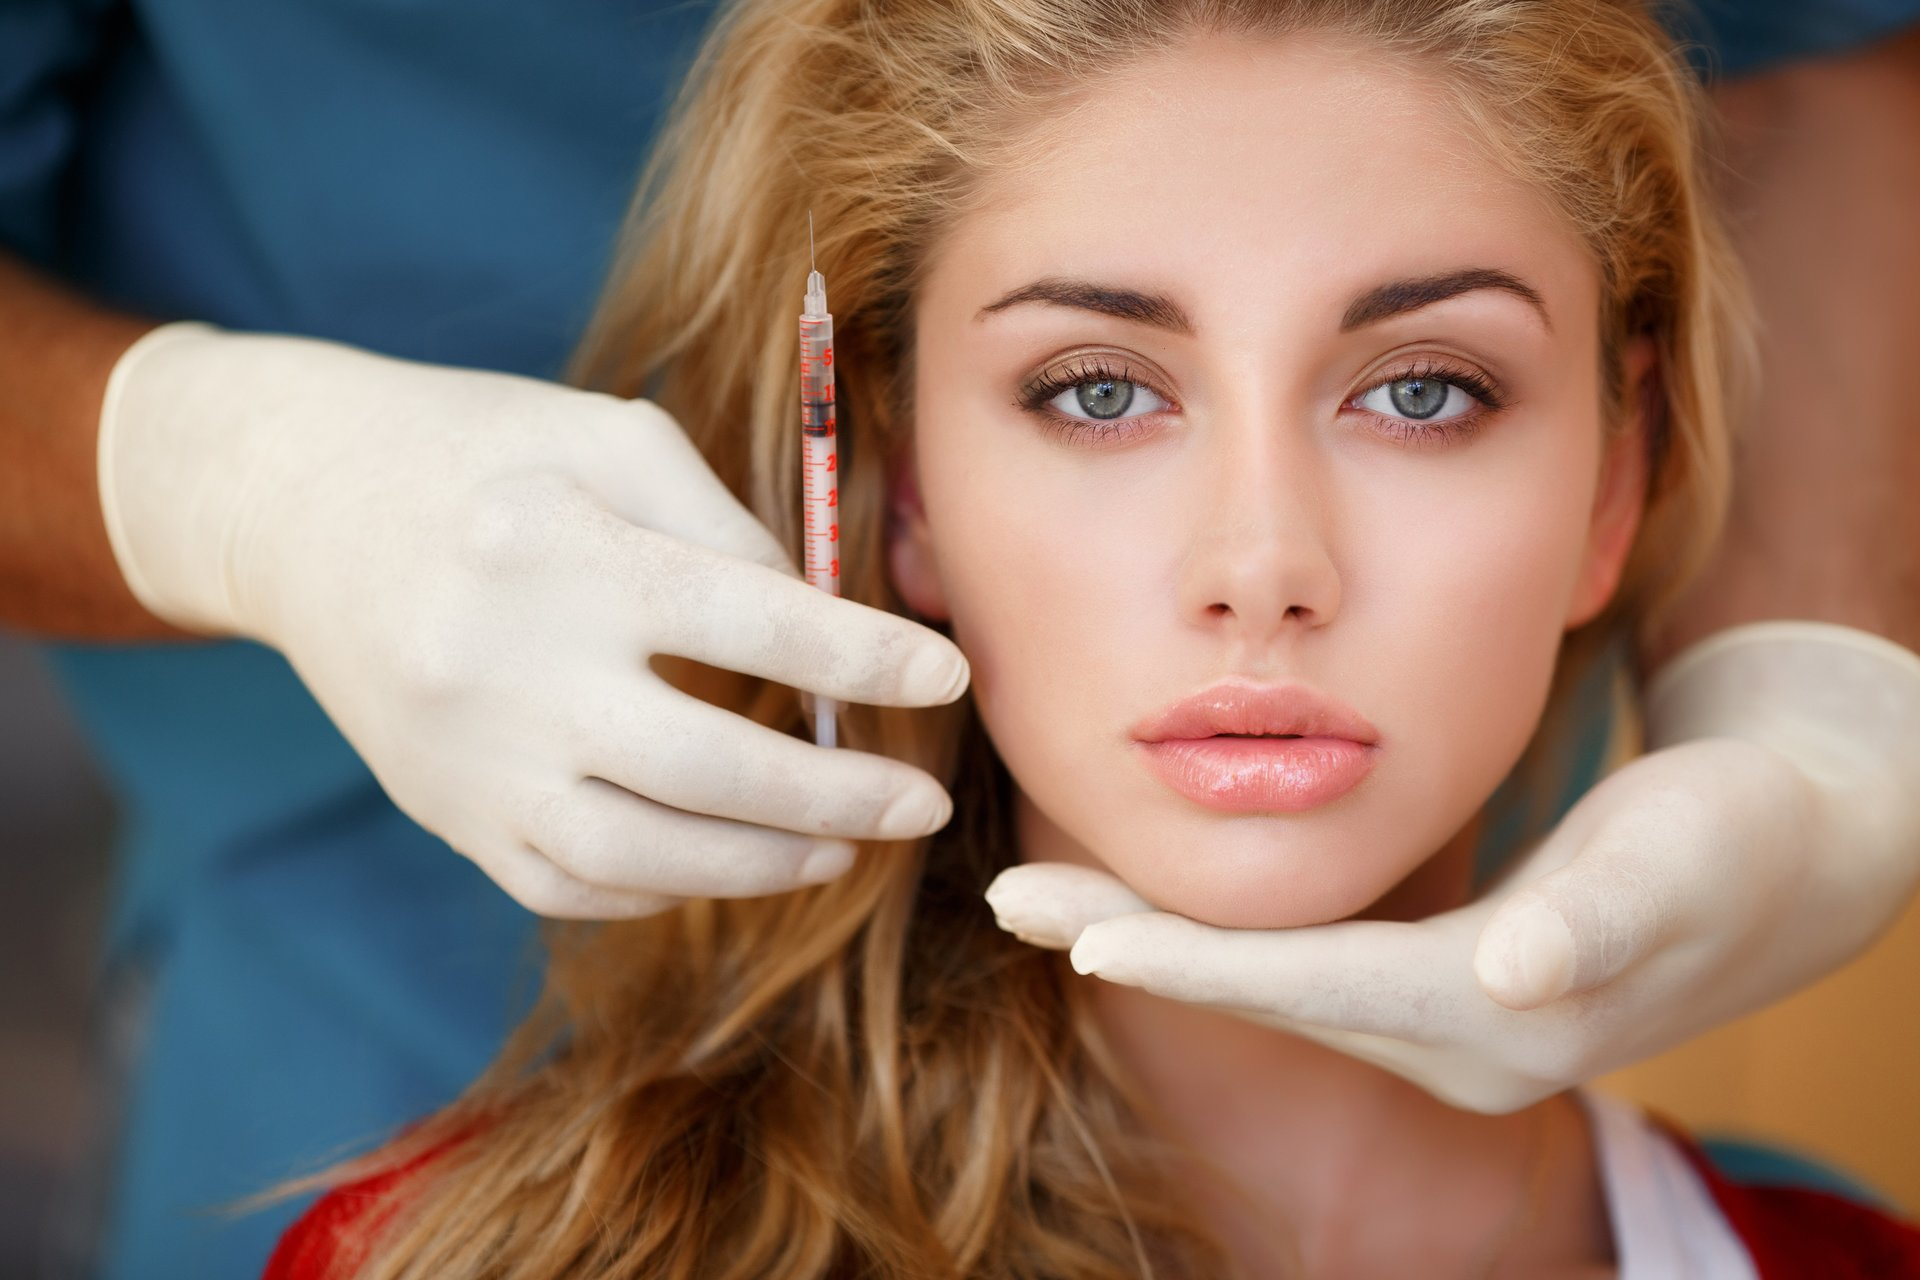 Questions to ask before your botox treatment 6 things to look for when choosing a botox clinic solutioingenieria Image collections